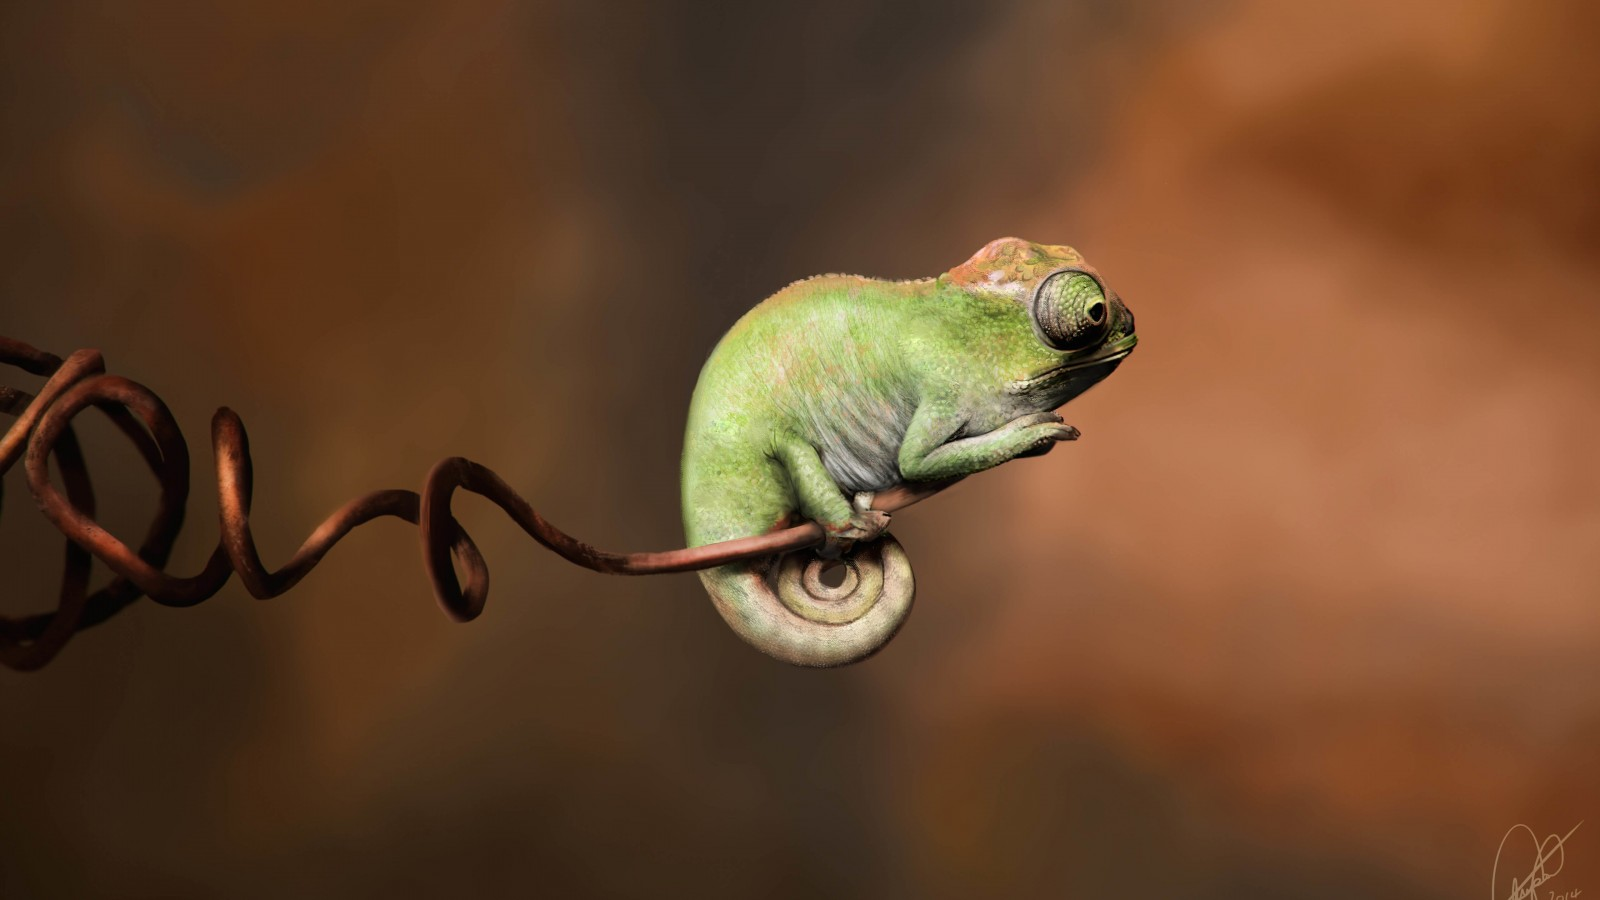 Baby Chameleon Perching On a Twisted Branch Wallpaper for Desktop 1600x900